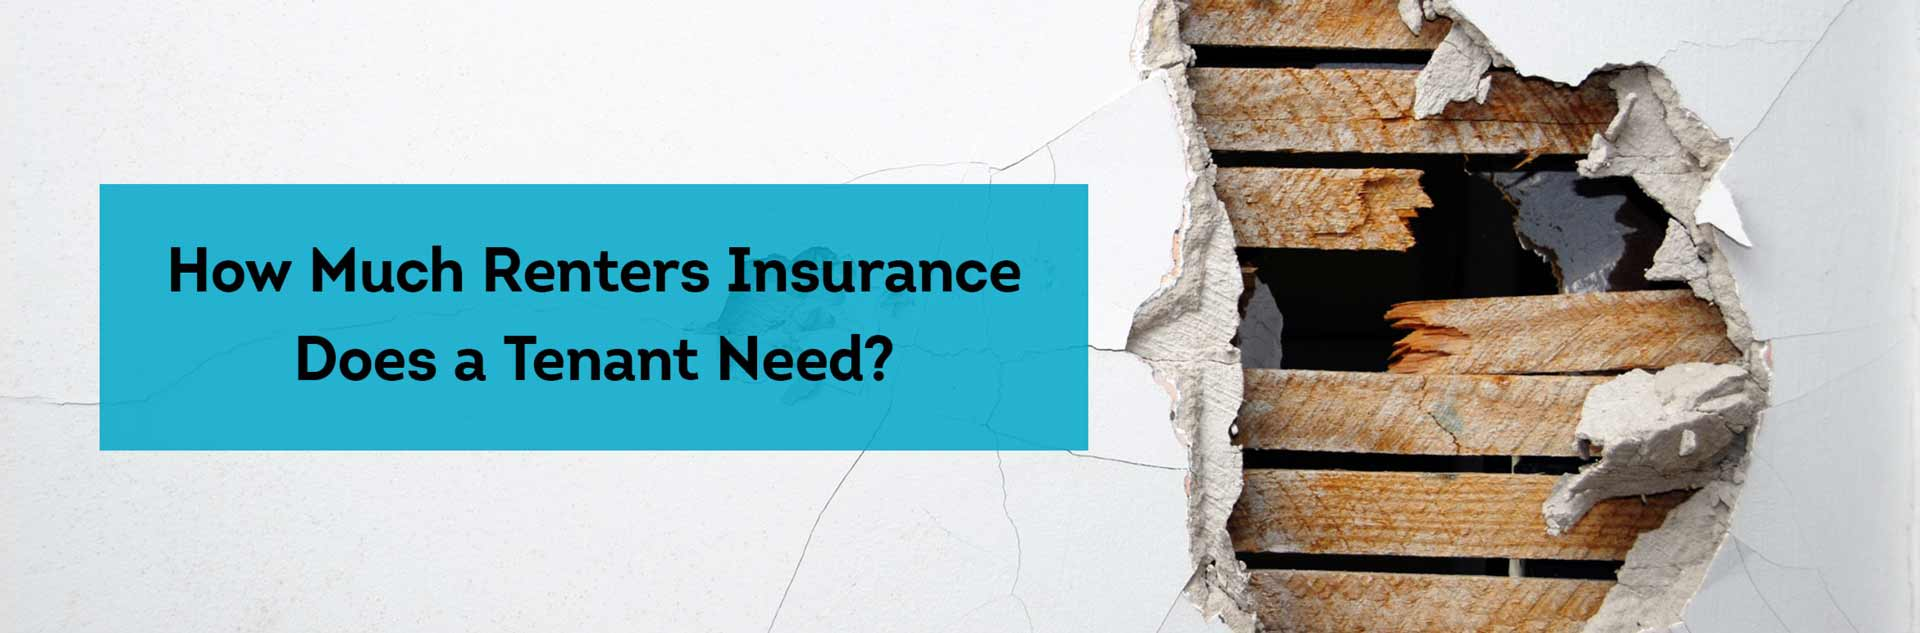 how much renters insurance should be required?